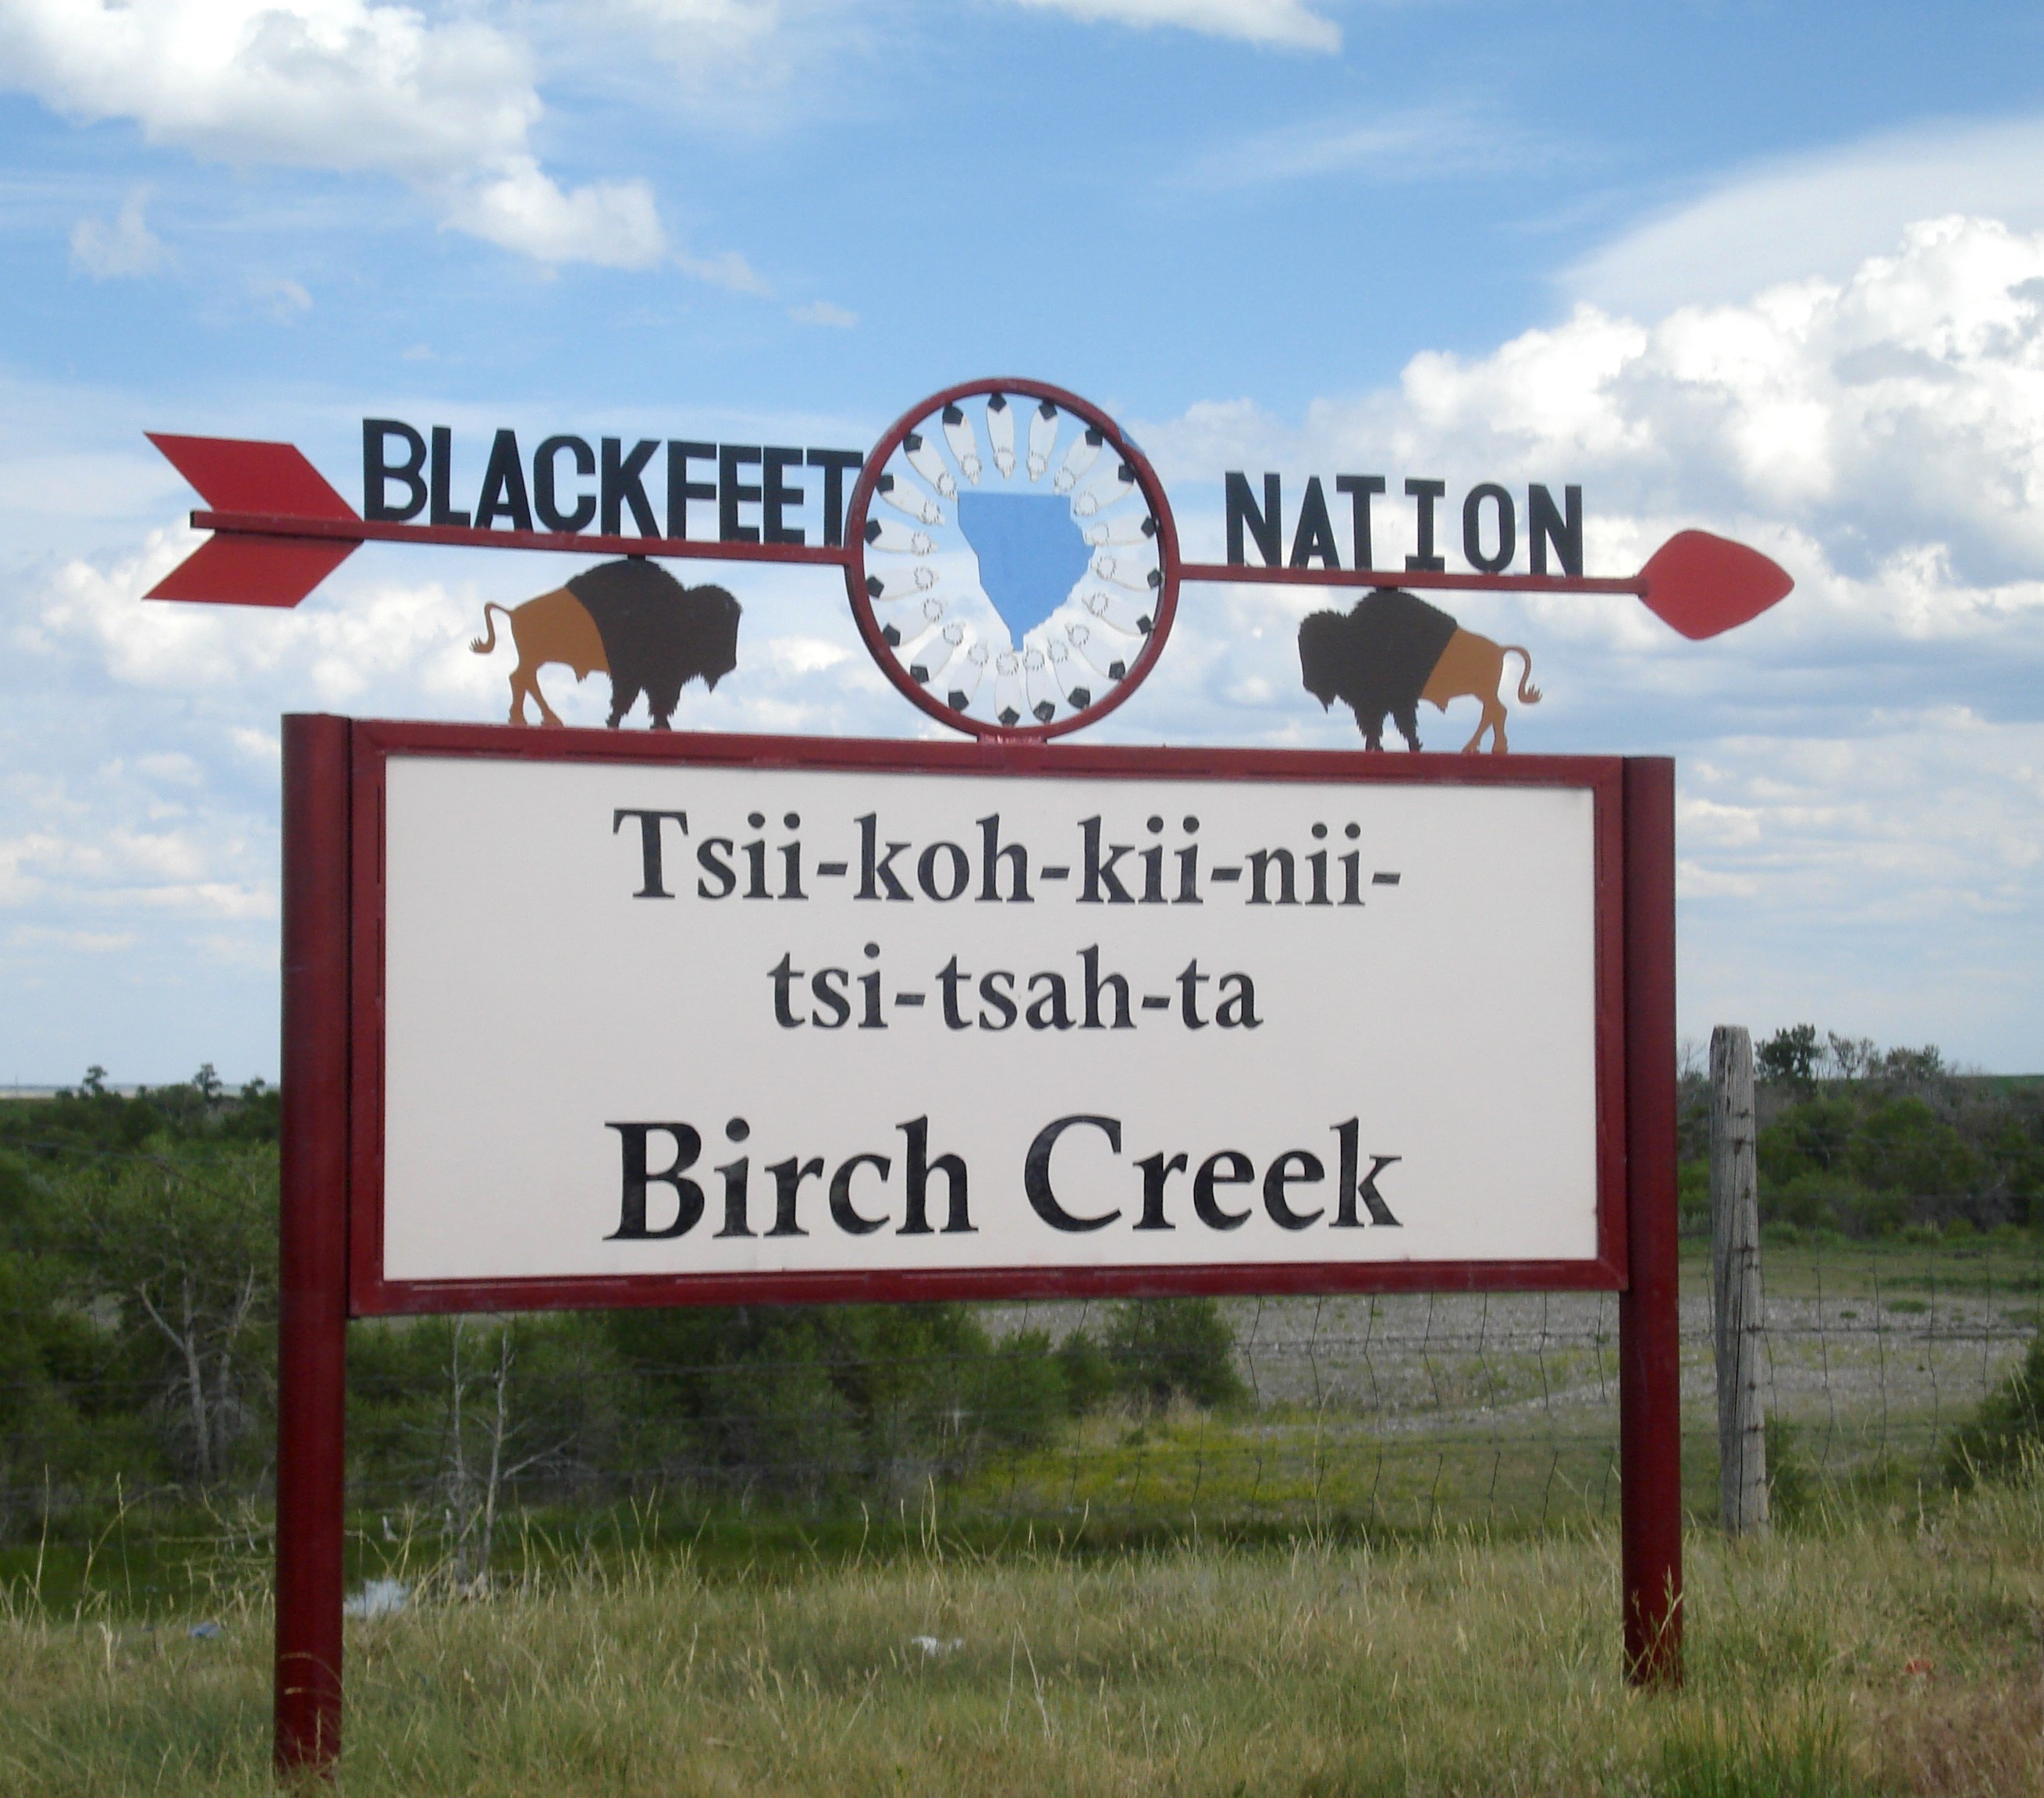 Senate committee delays action on Blackfeet Nation water rights